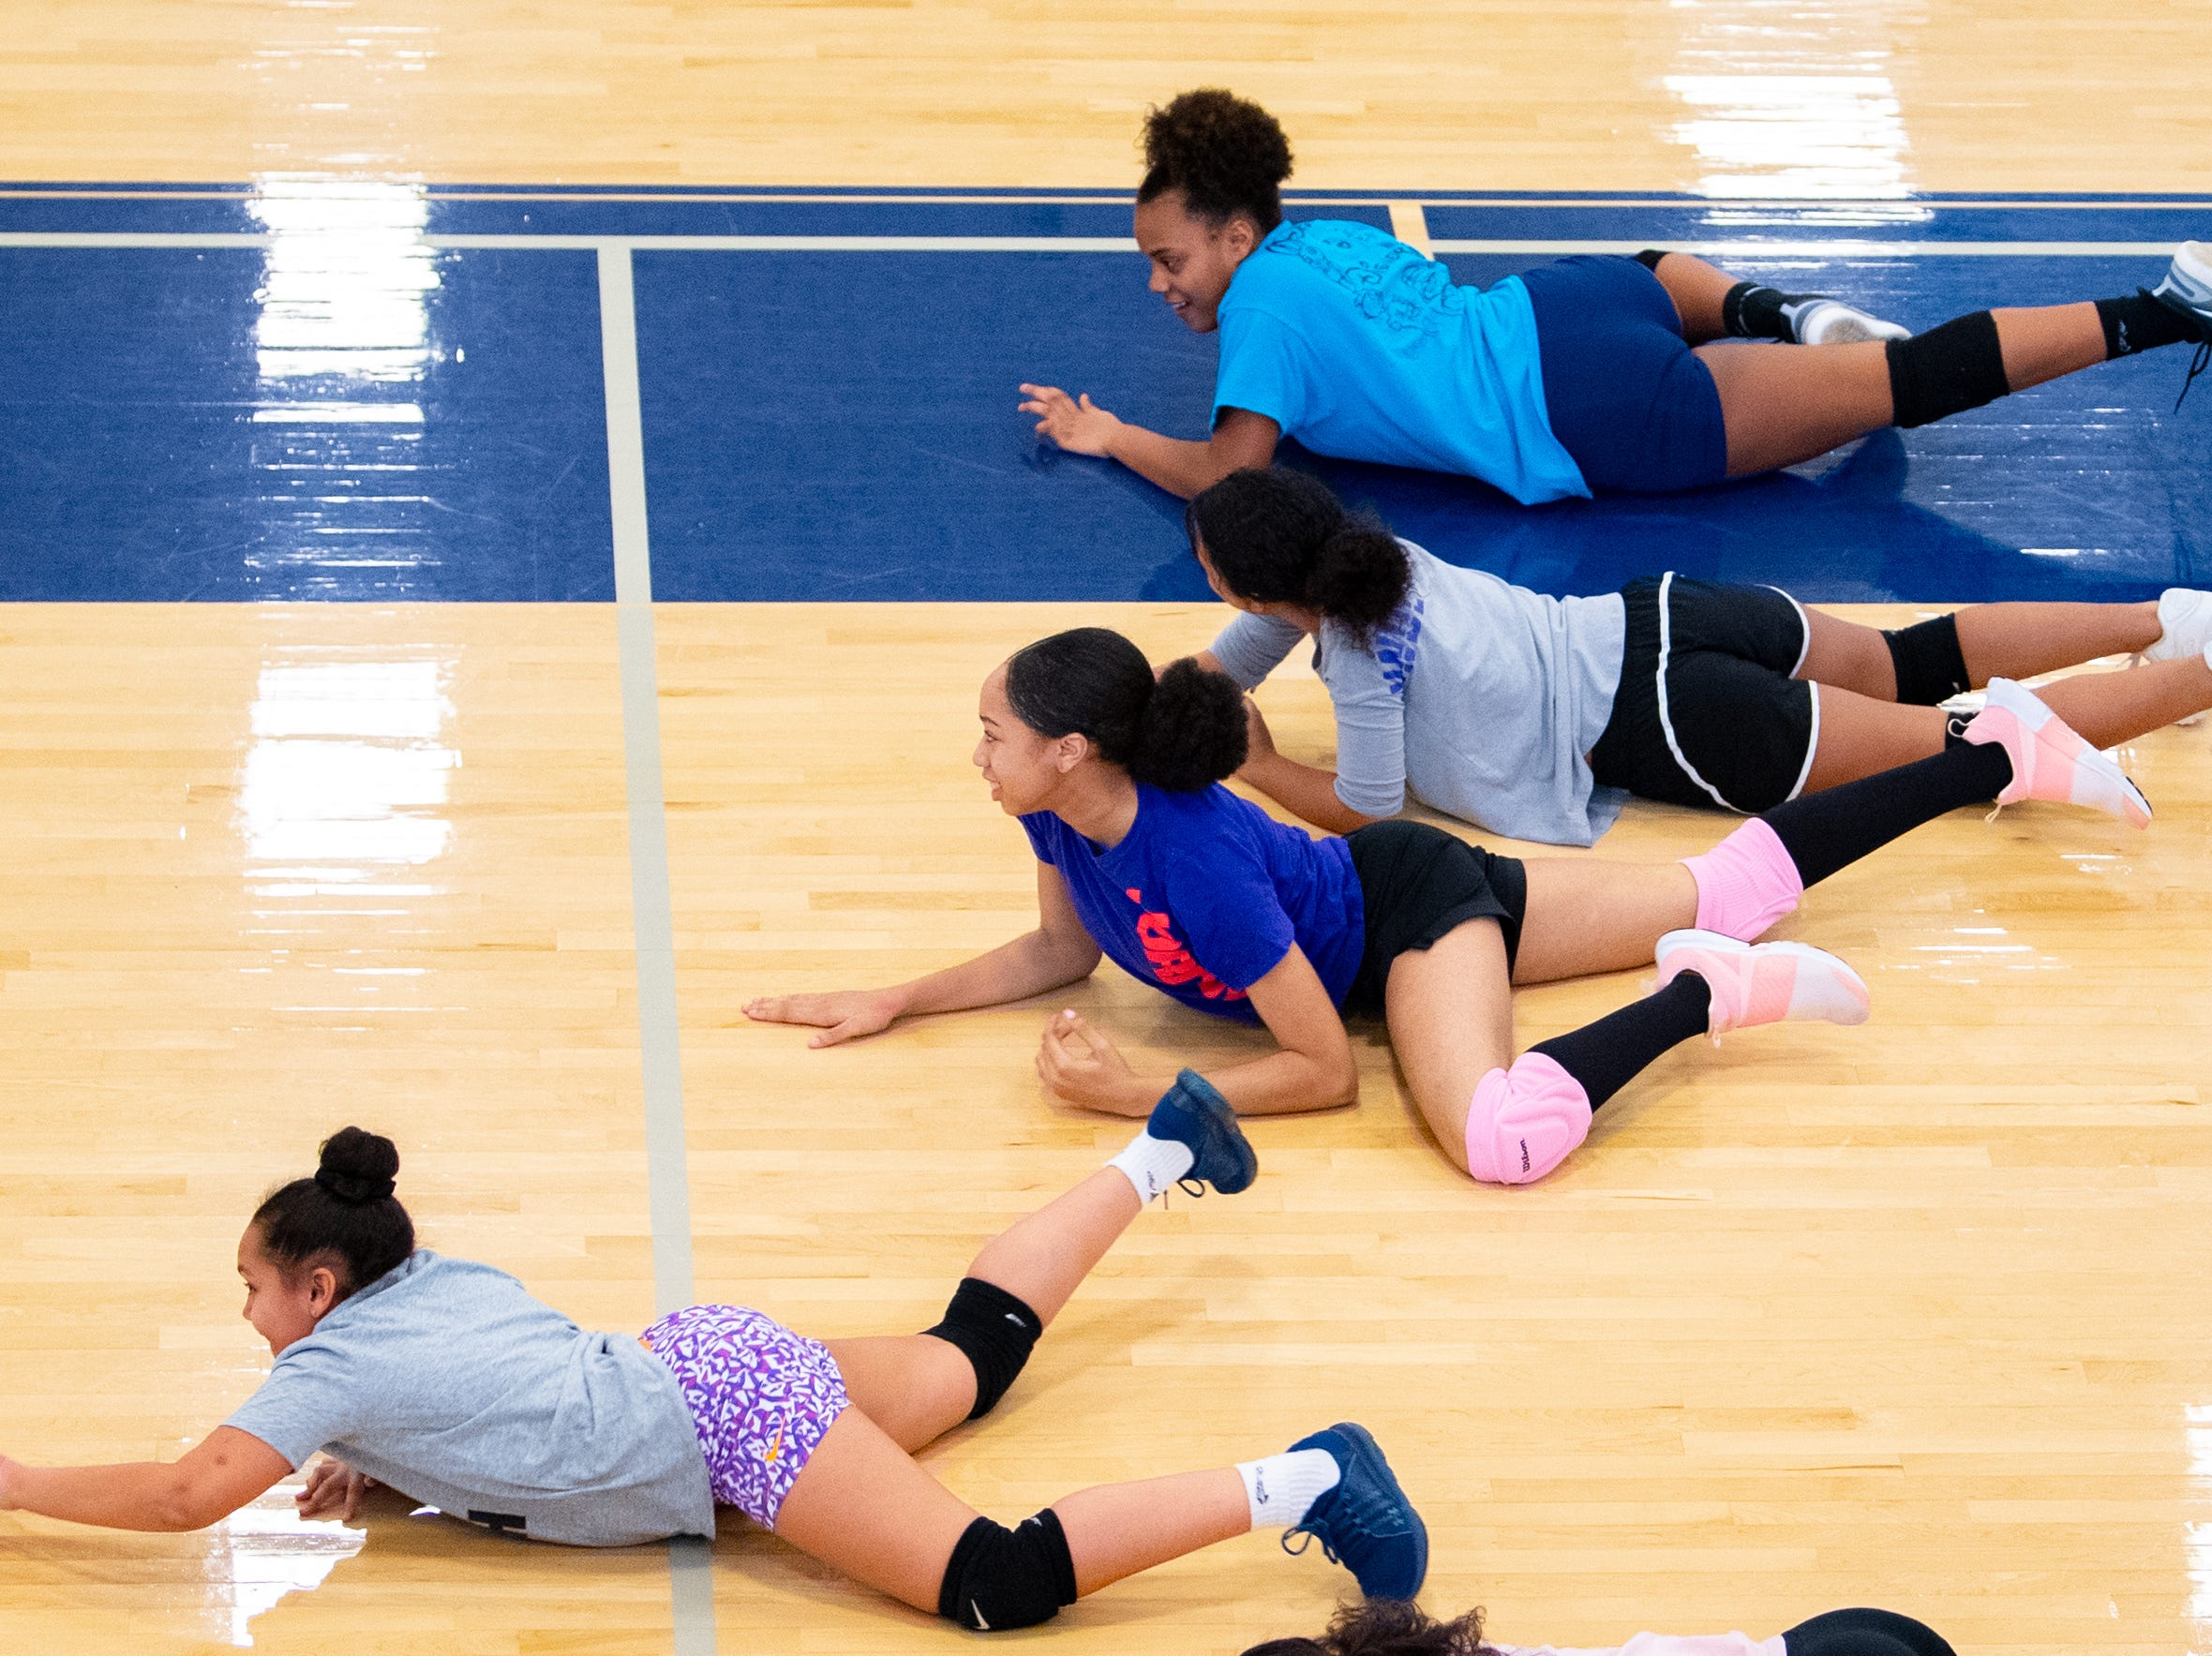 In this drill, players must crawl to the net and back to the base line, March 5, 2019.